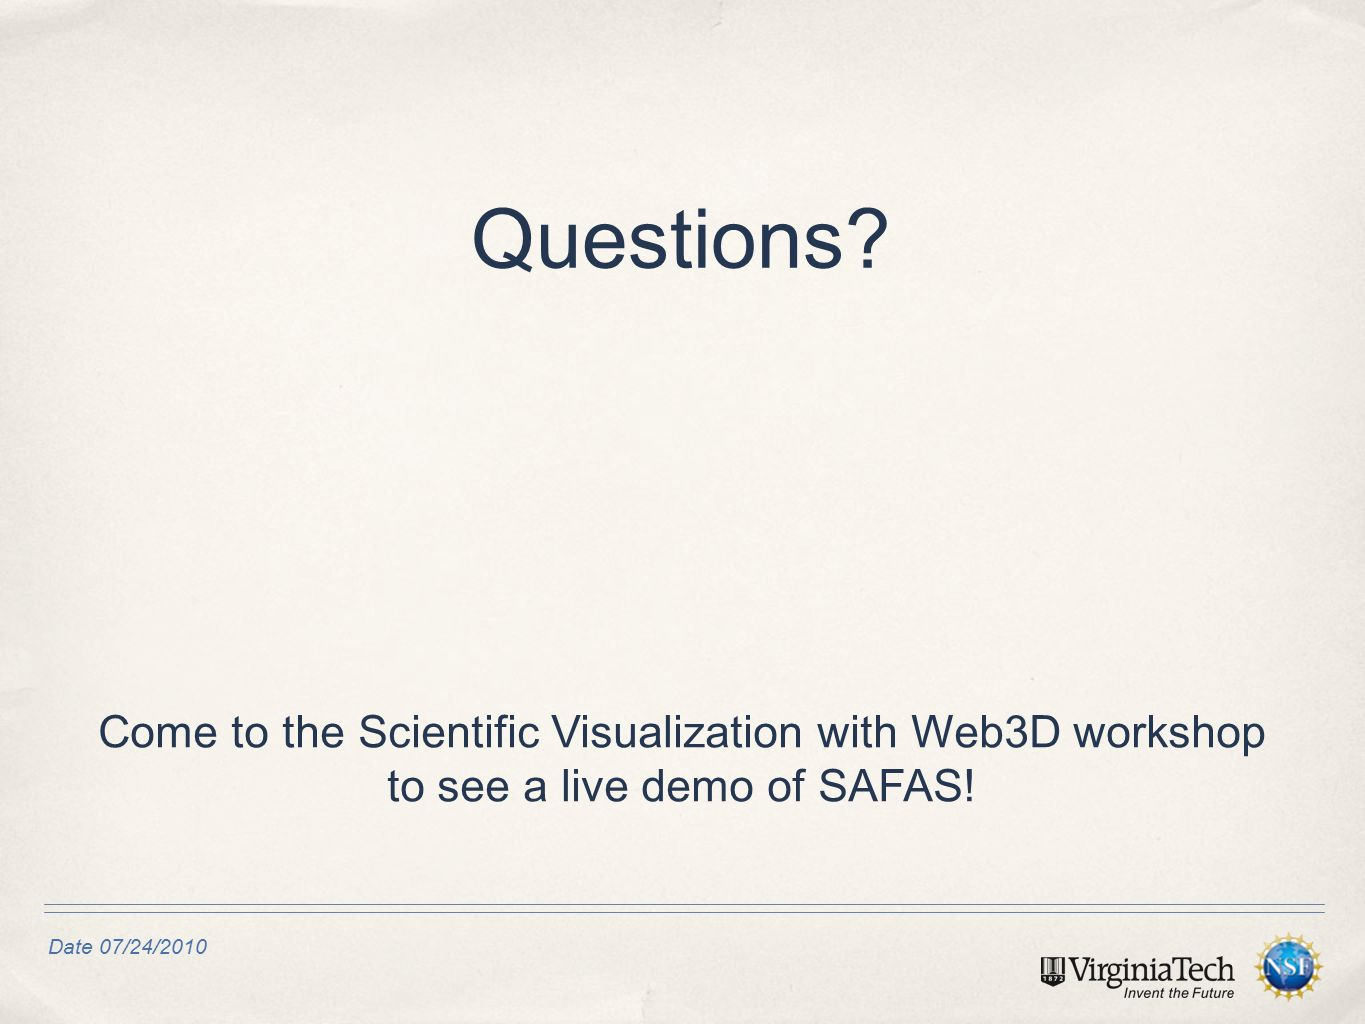 Date 07/24/2010 Questions? Come to the Scientific Visualization with Web3D workshop to see a live demo of SAFAS!